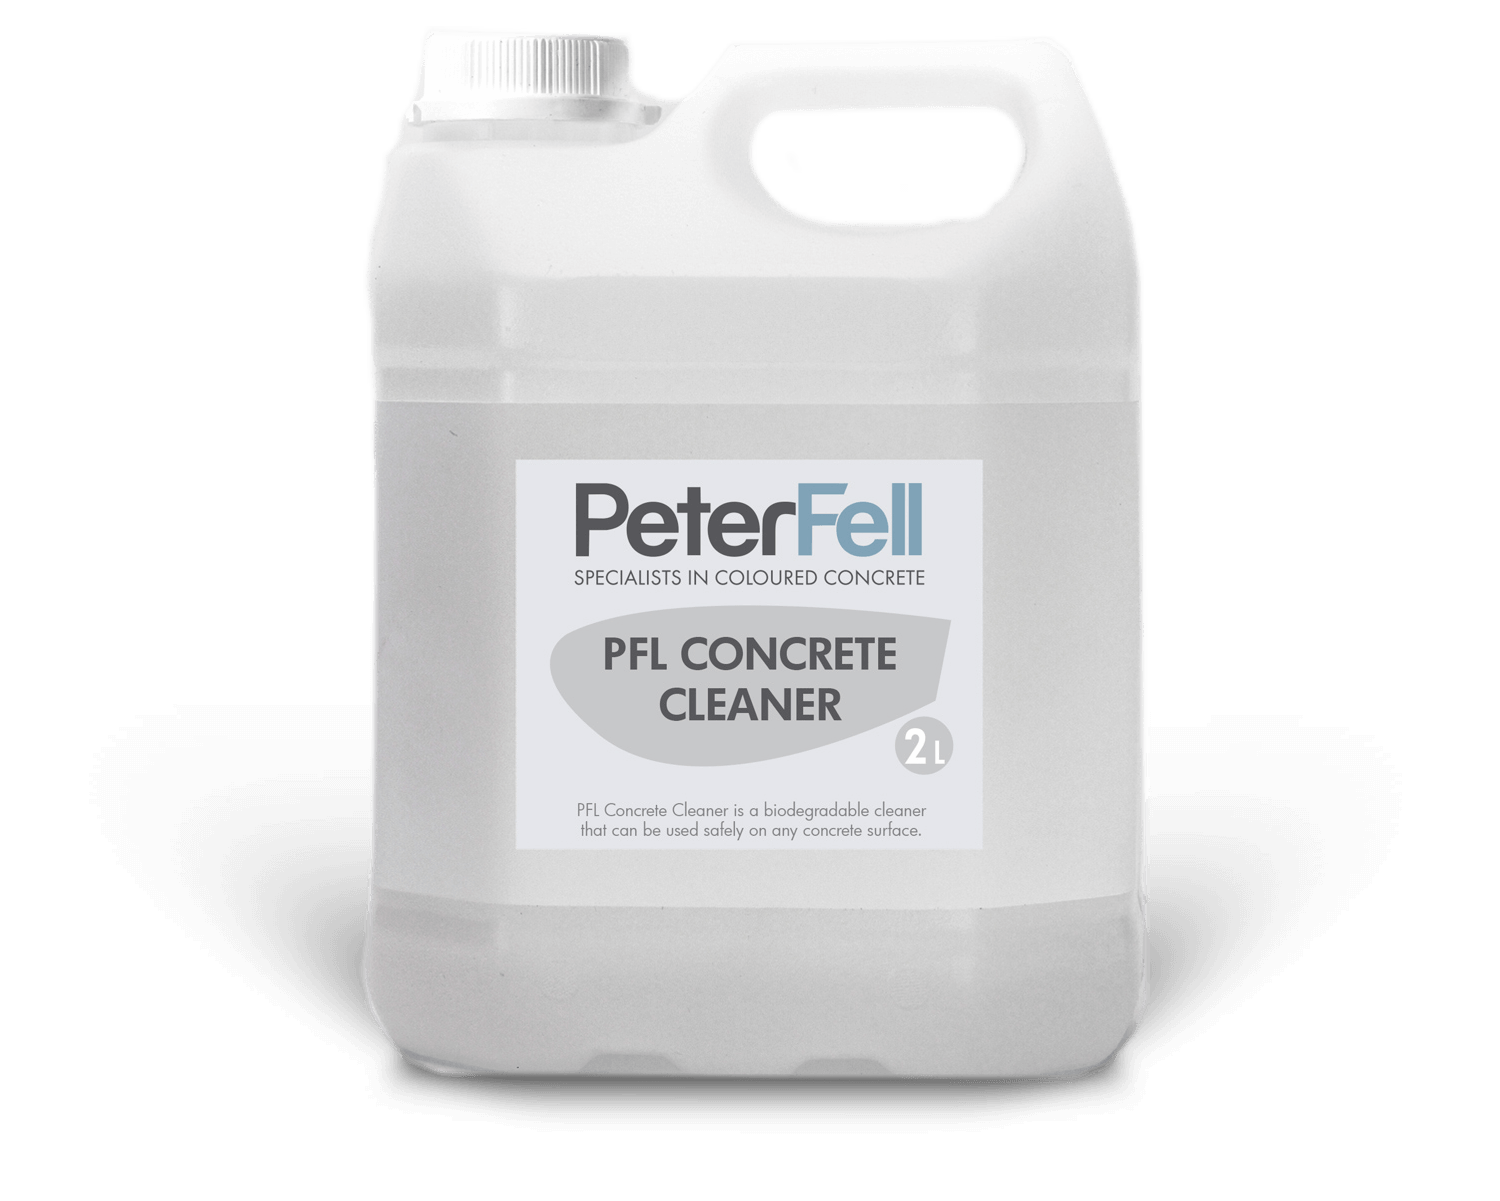 PFL Concrete Cleaner